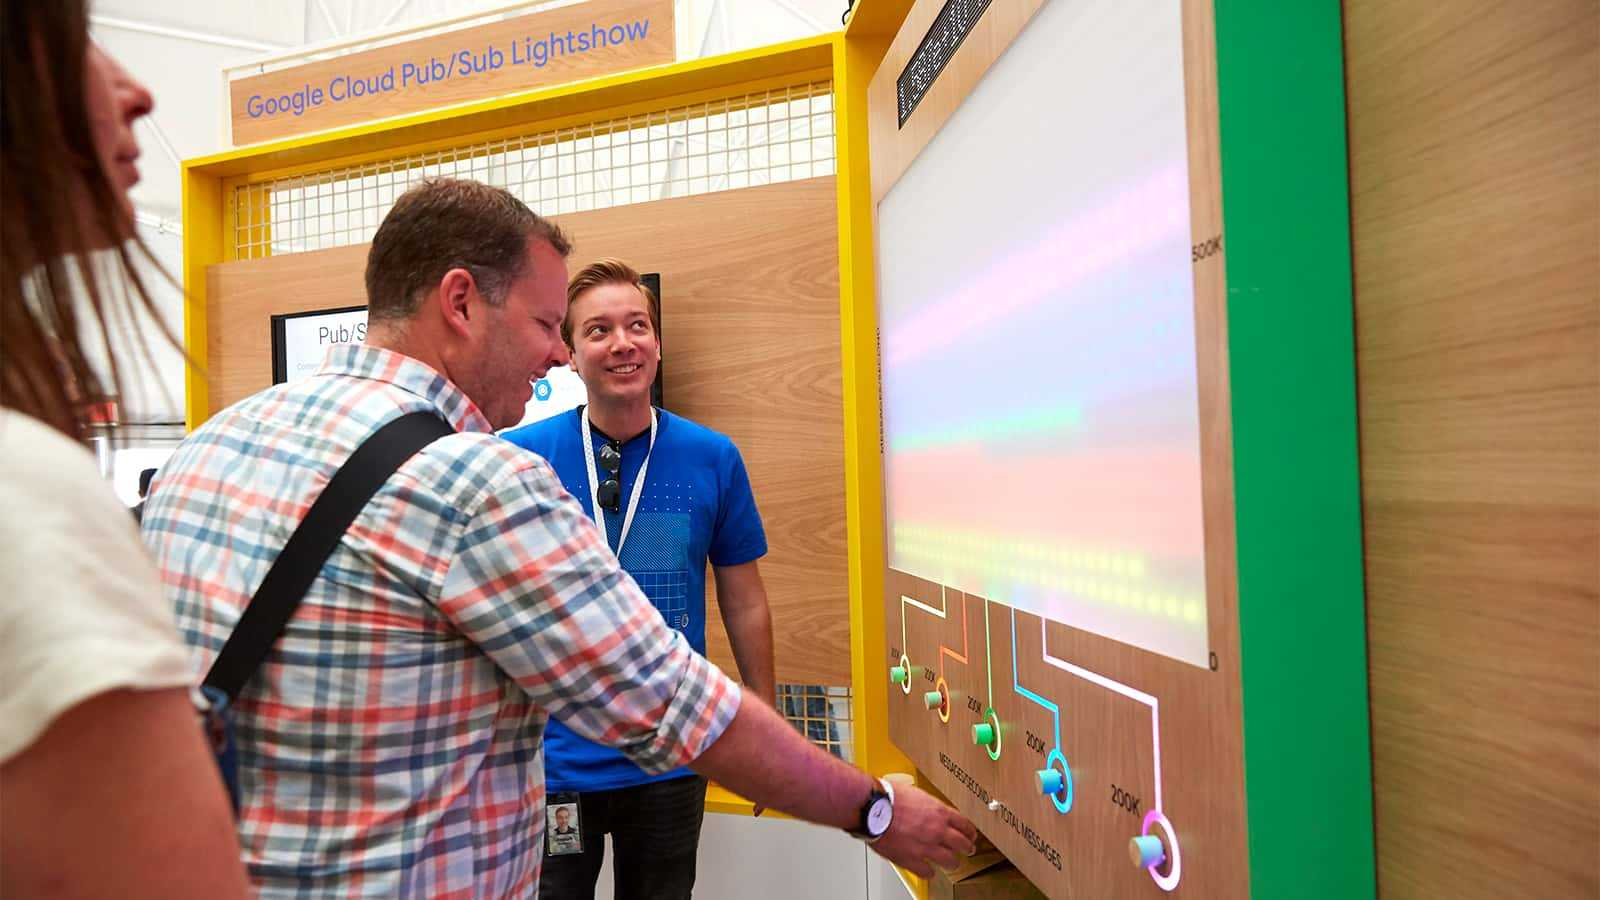 Attendee interacting with a Sandbox concept at Google I/O 2018.